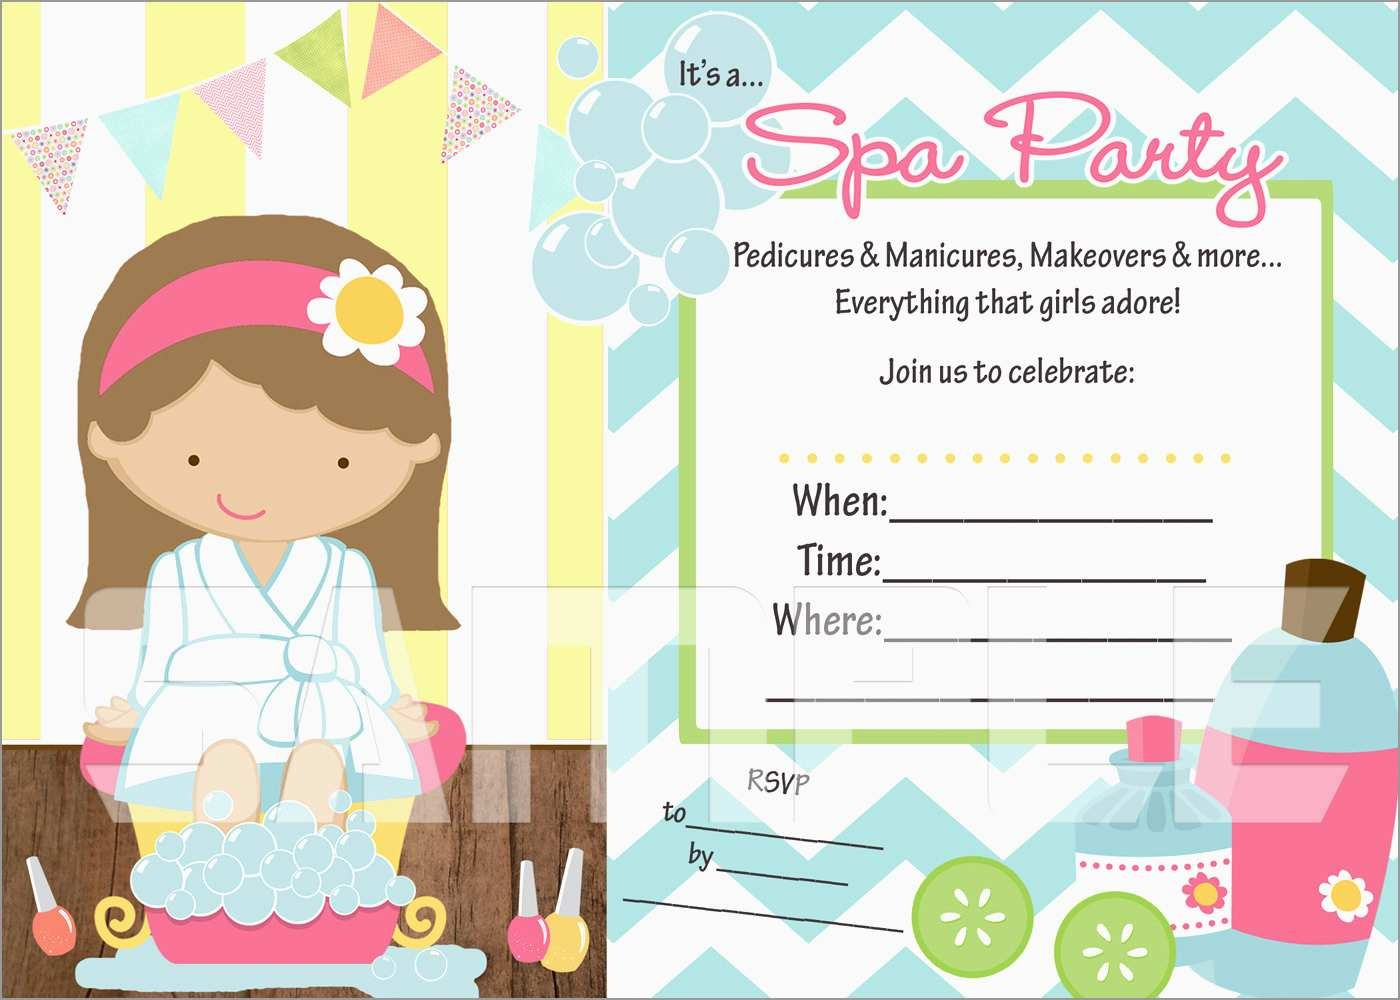 Free Printable Spa Party Invitations Templates Luxury Free Printable - Free Printable Spa Party Invitations Templates